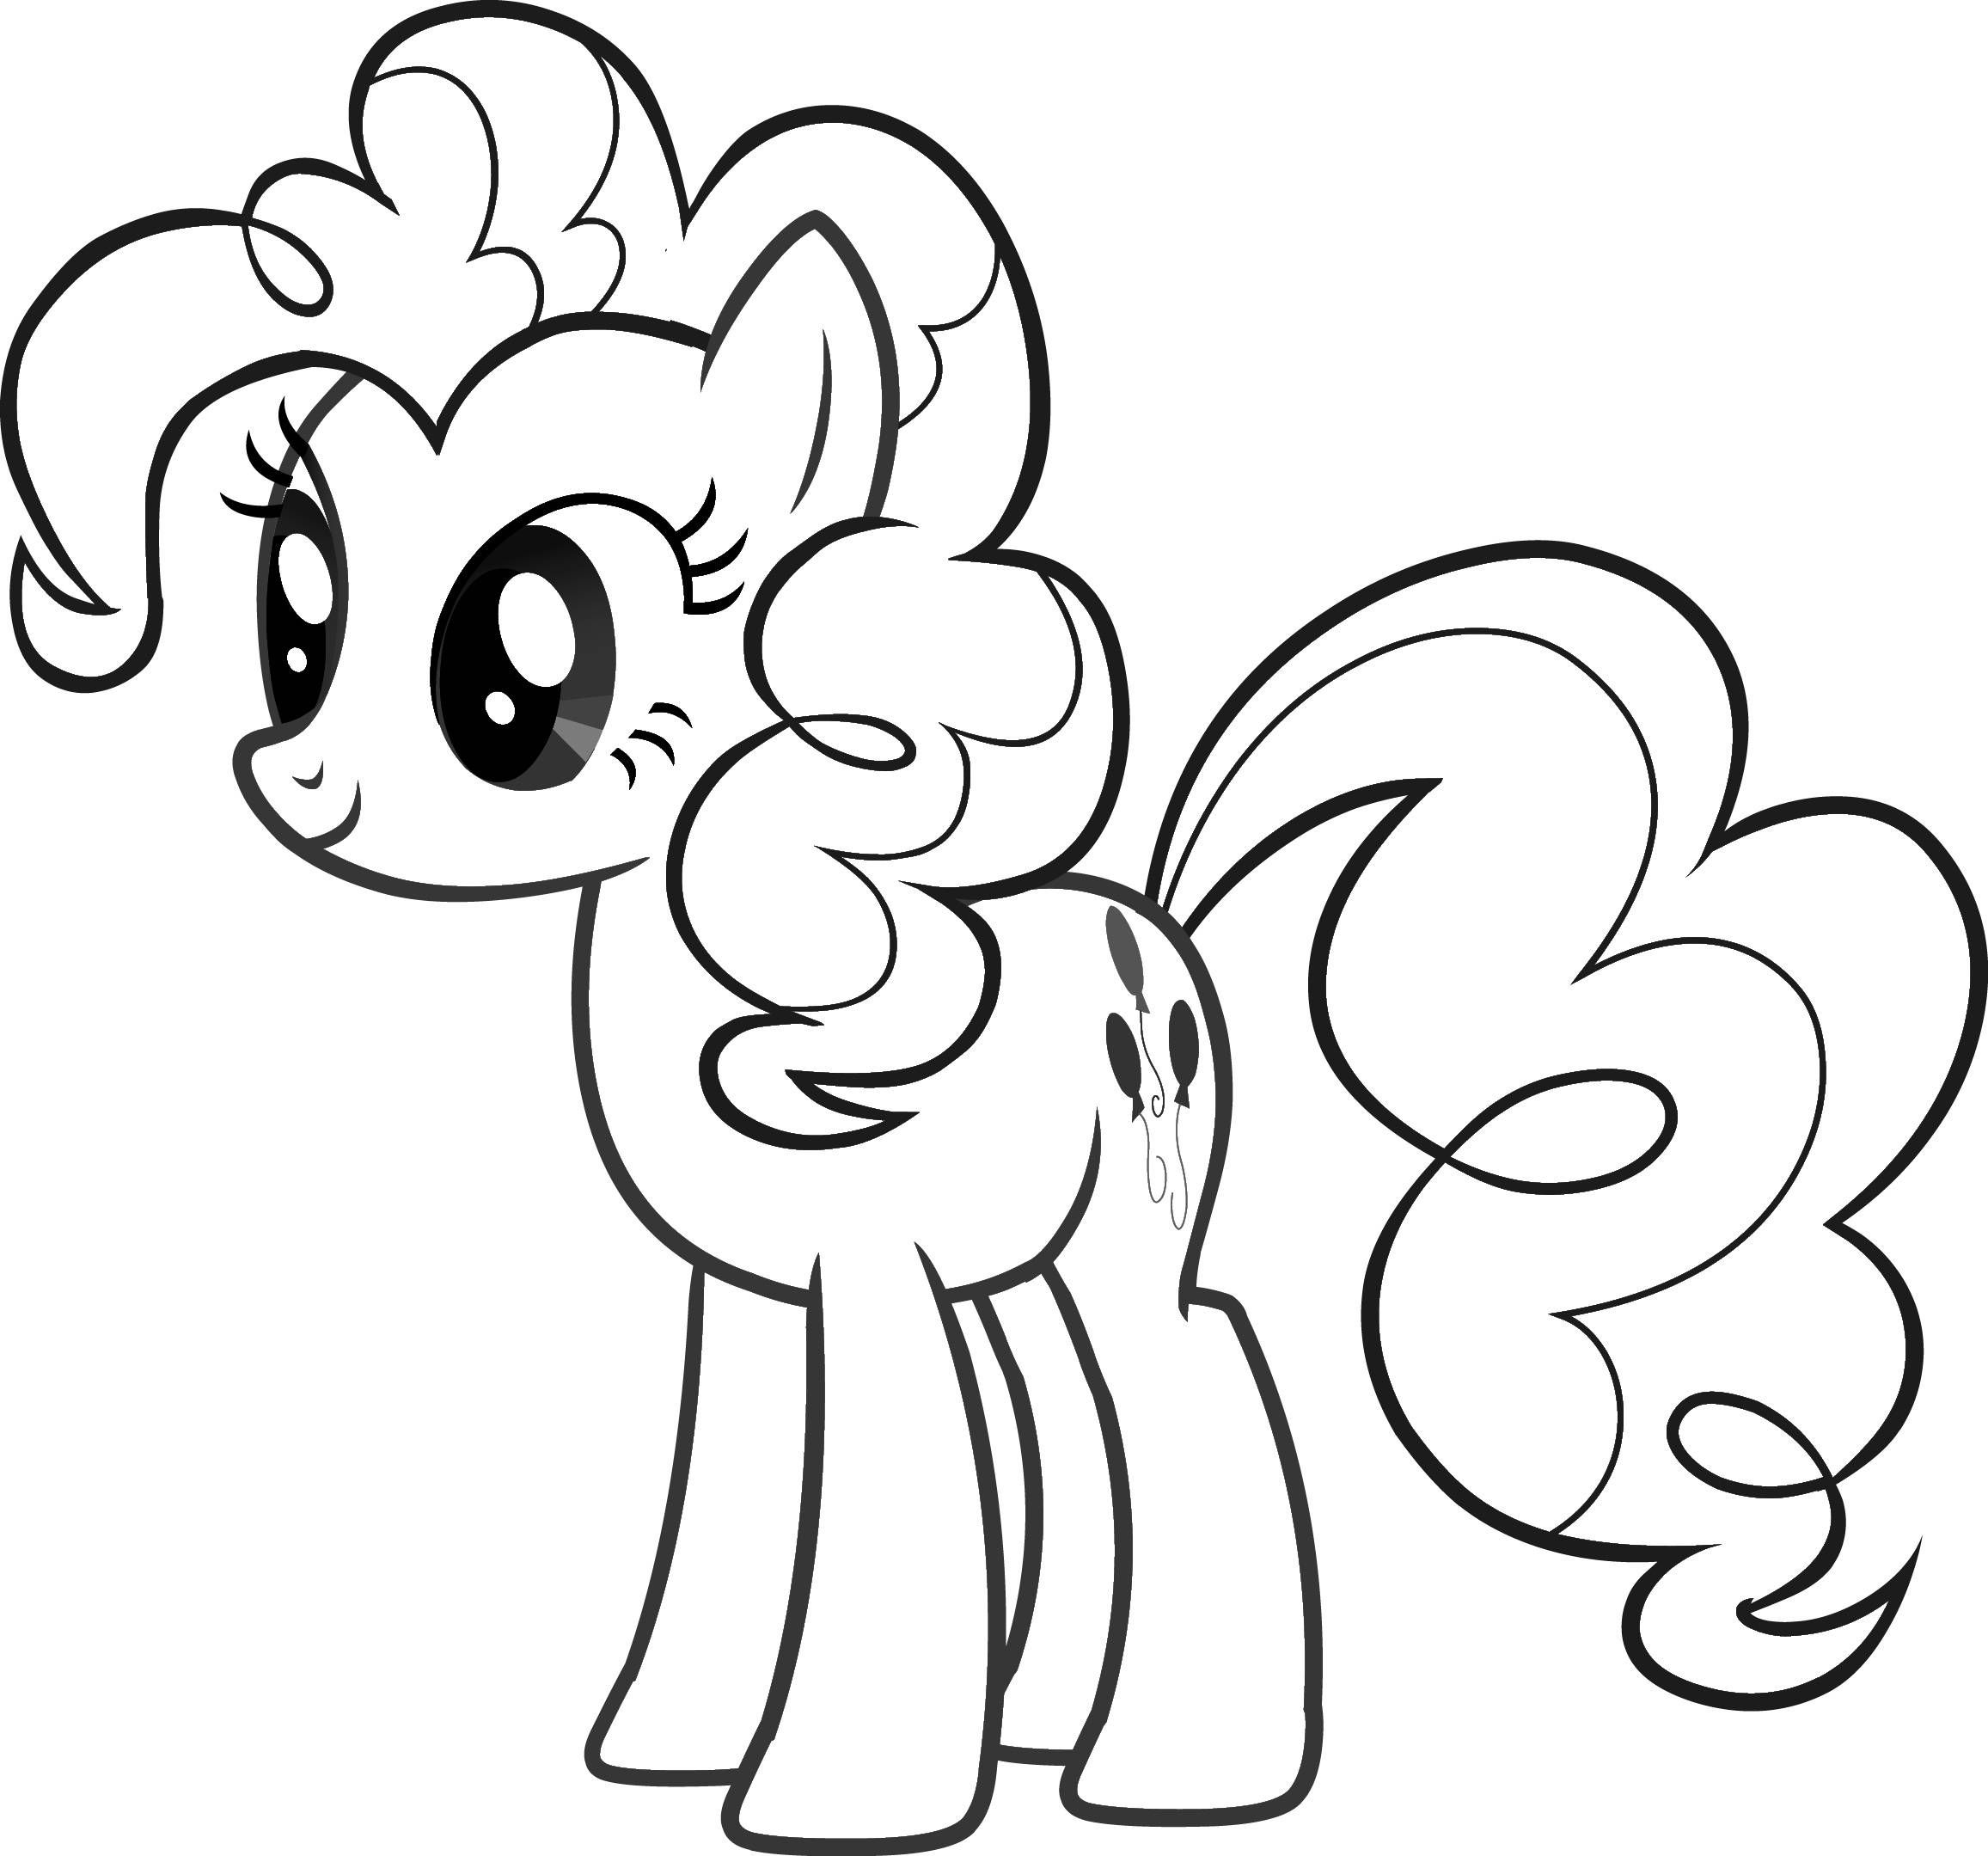 A Free My Little Pony Rainbow Dash Coloring Page For You To Print Your Preschooler The Is Courtesy Of Hub Network Which Airs